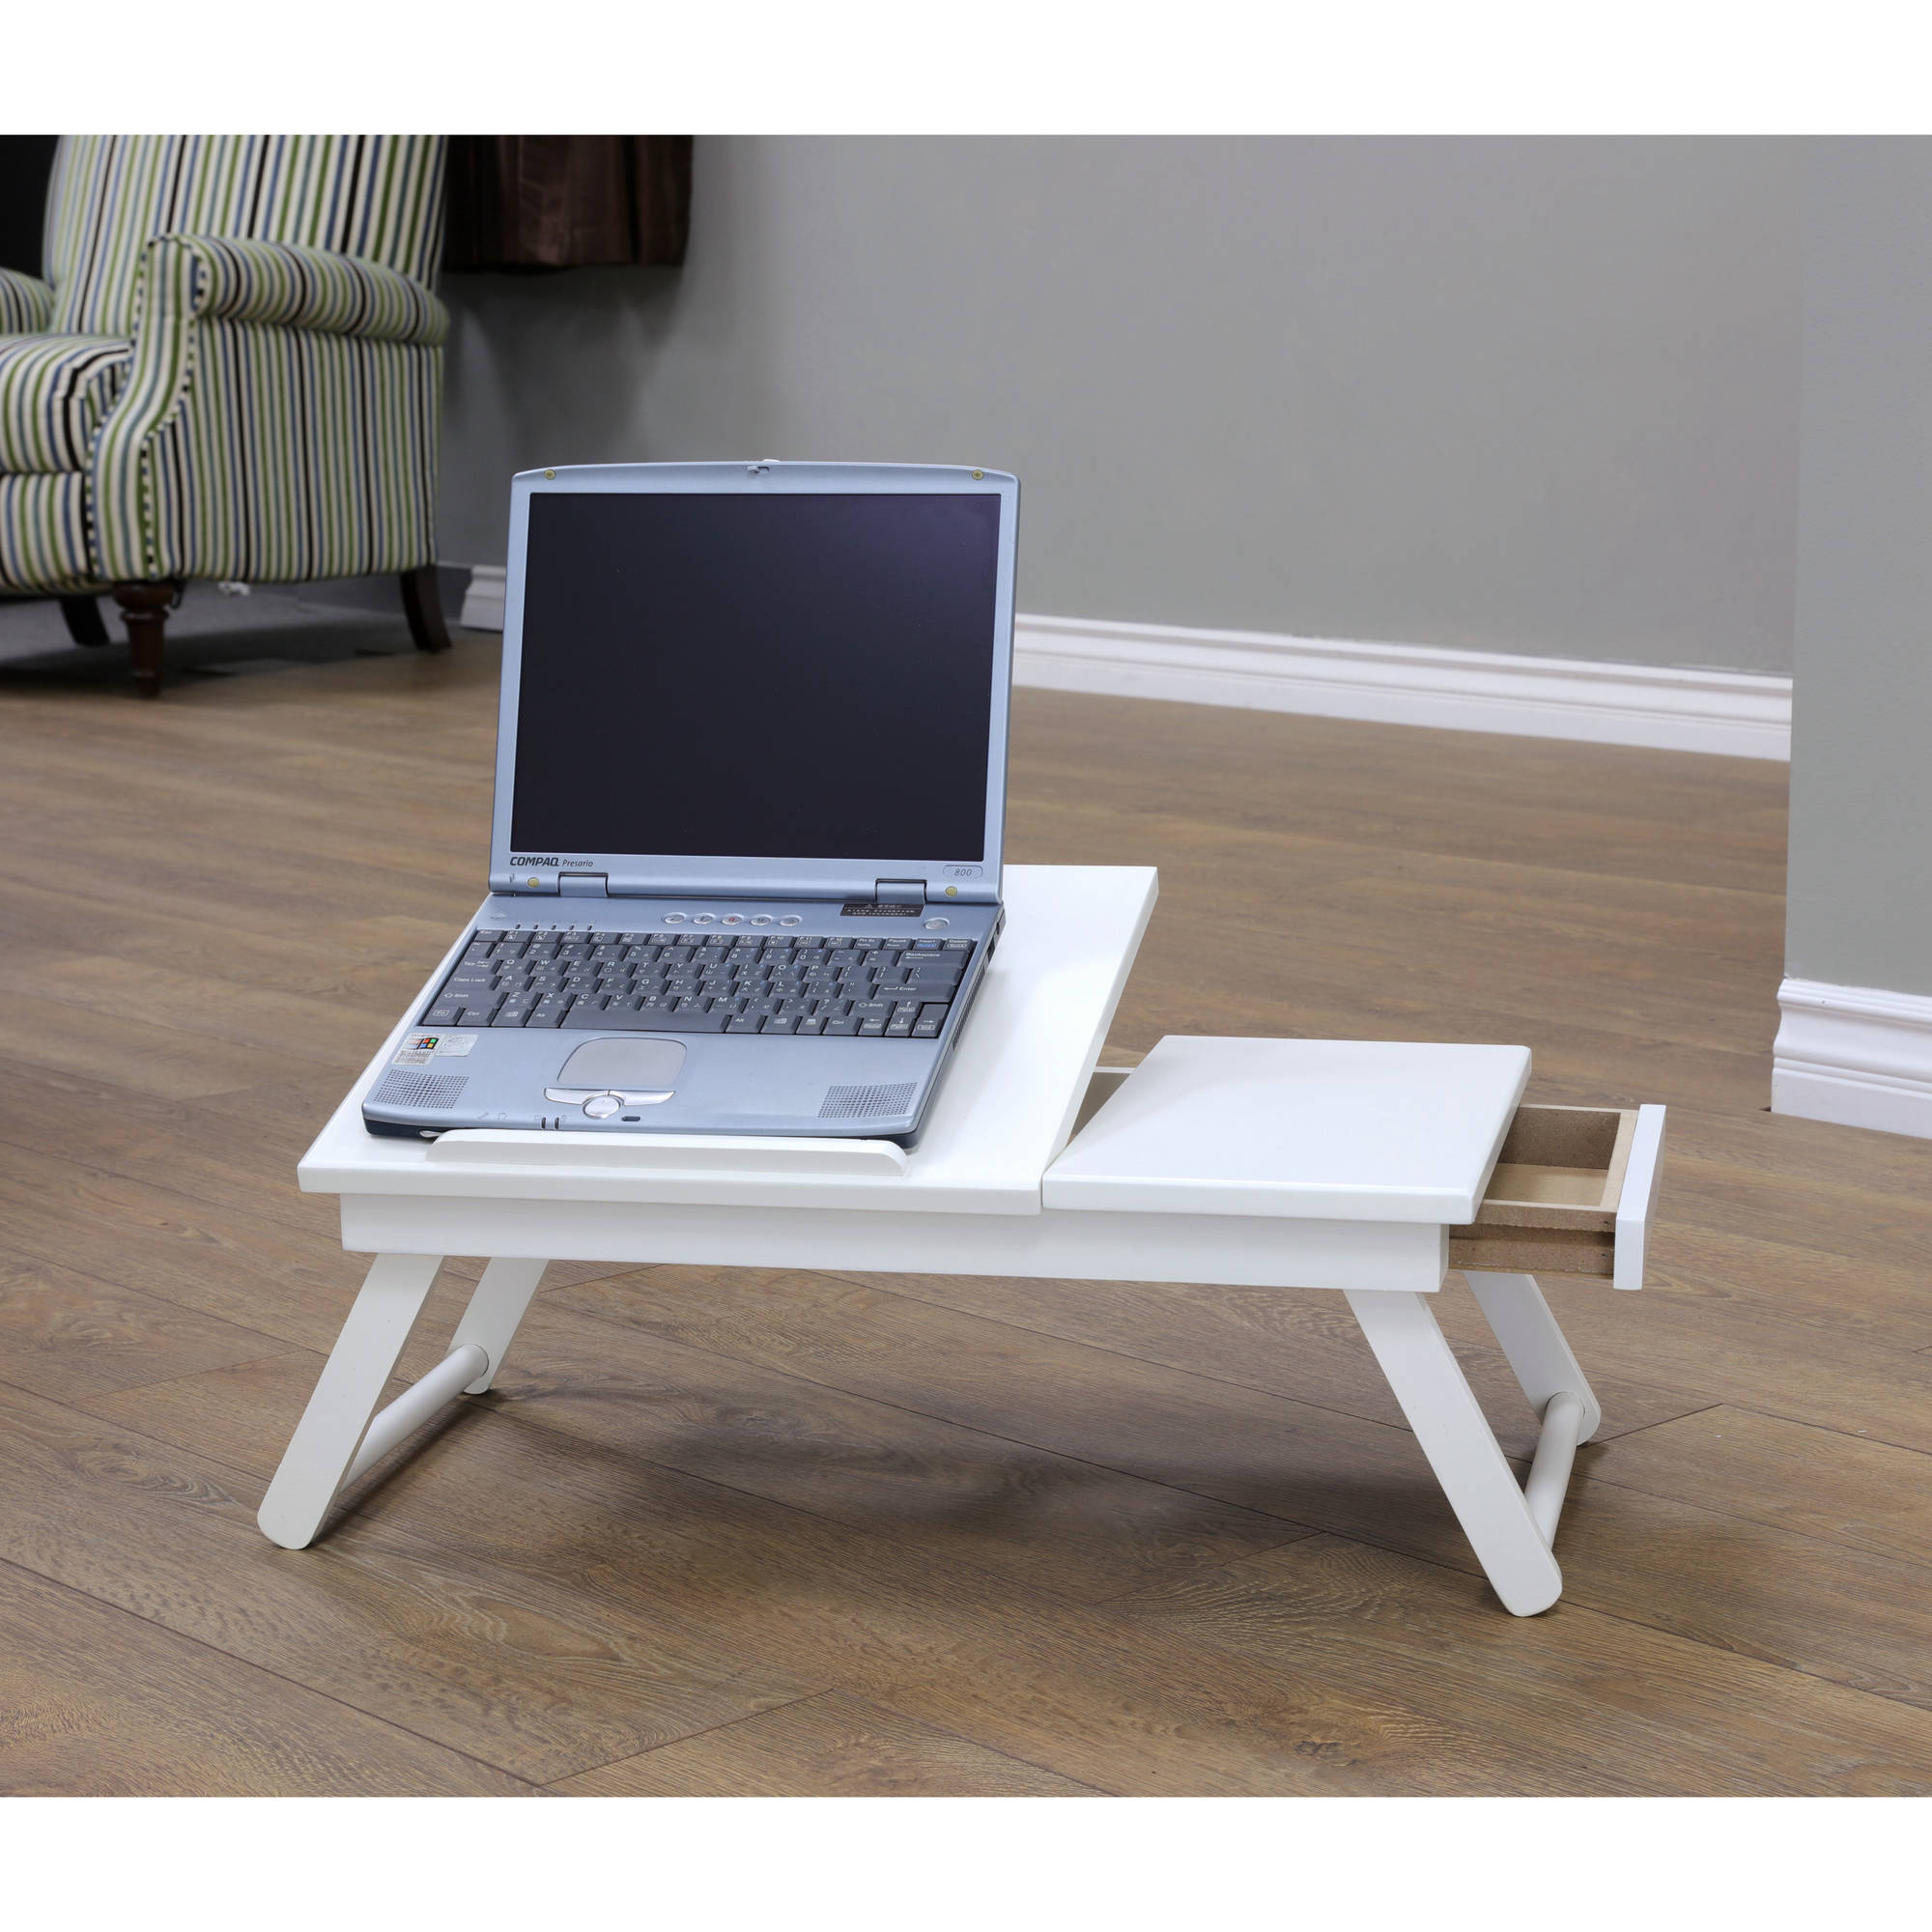 Home Craft Flip Top Lap Desk,Multiple Colors